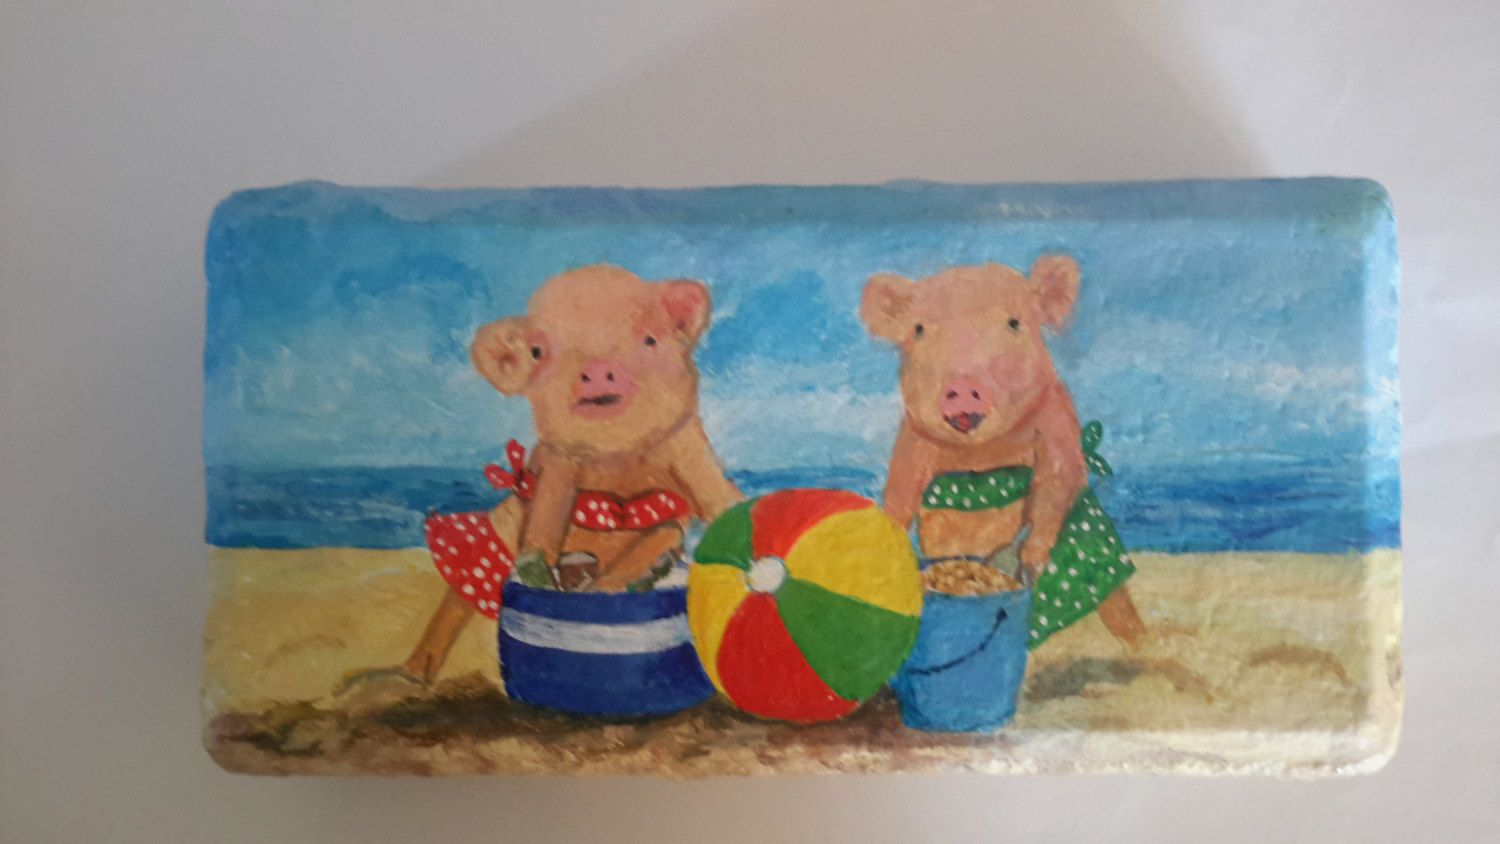 Painted Paver Craft, Pig Art, Pigs On The Beach Painting, Painted Brick Doorstop, Painting On Brick, Collectible Pig, Pig Lovers, Pig Gift by ArtistTooStudios on Etsy